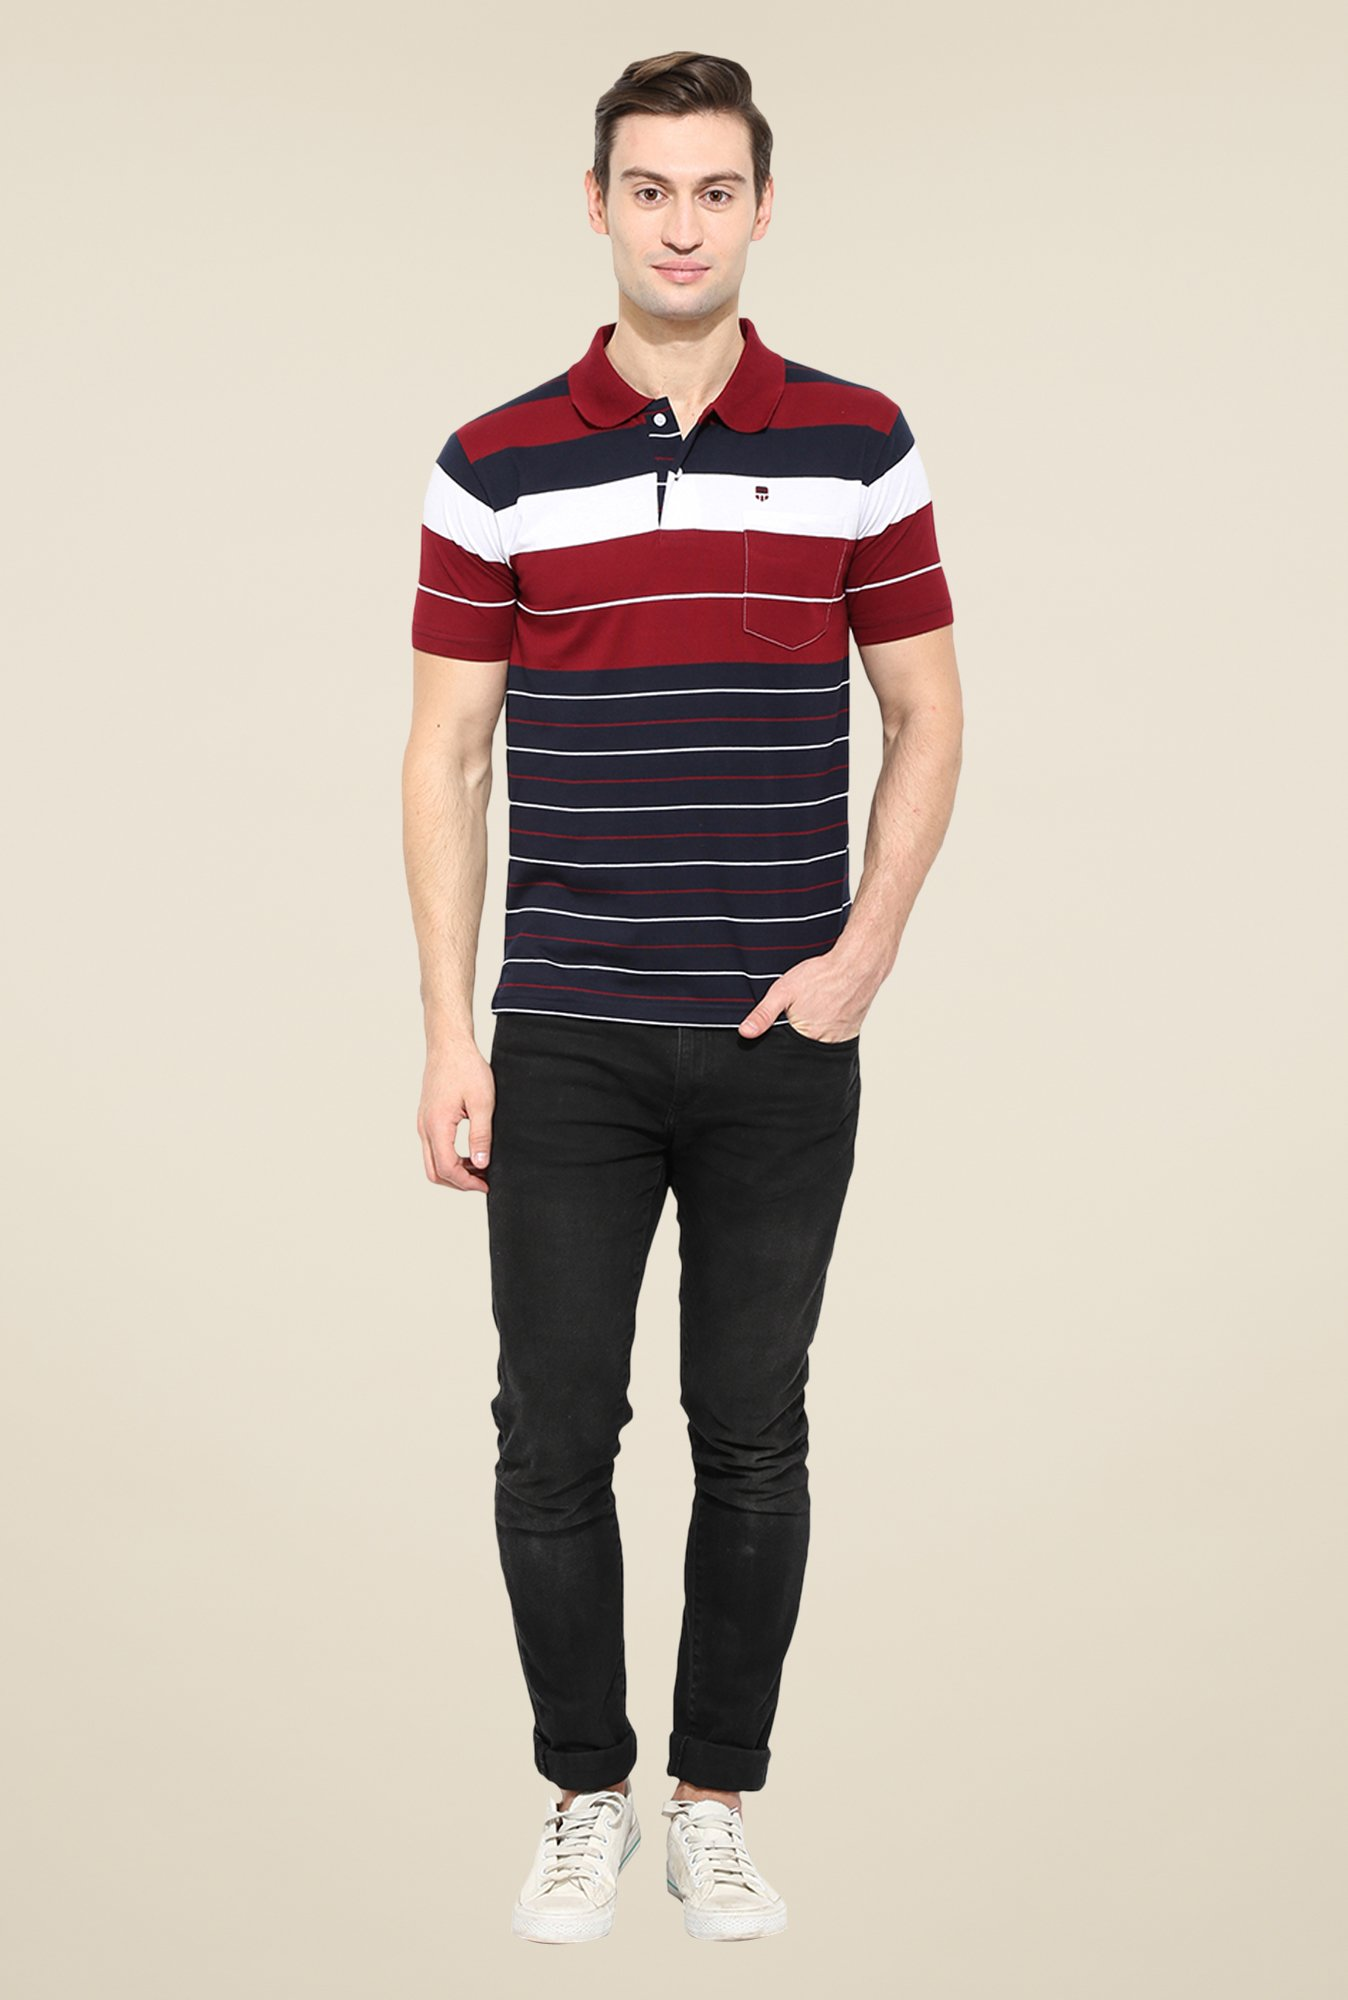 Duke Stardust Navy & Maroon Striped T-shirt